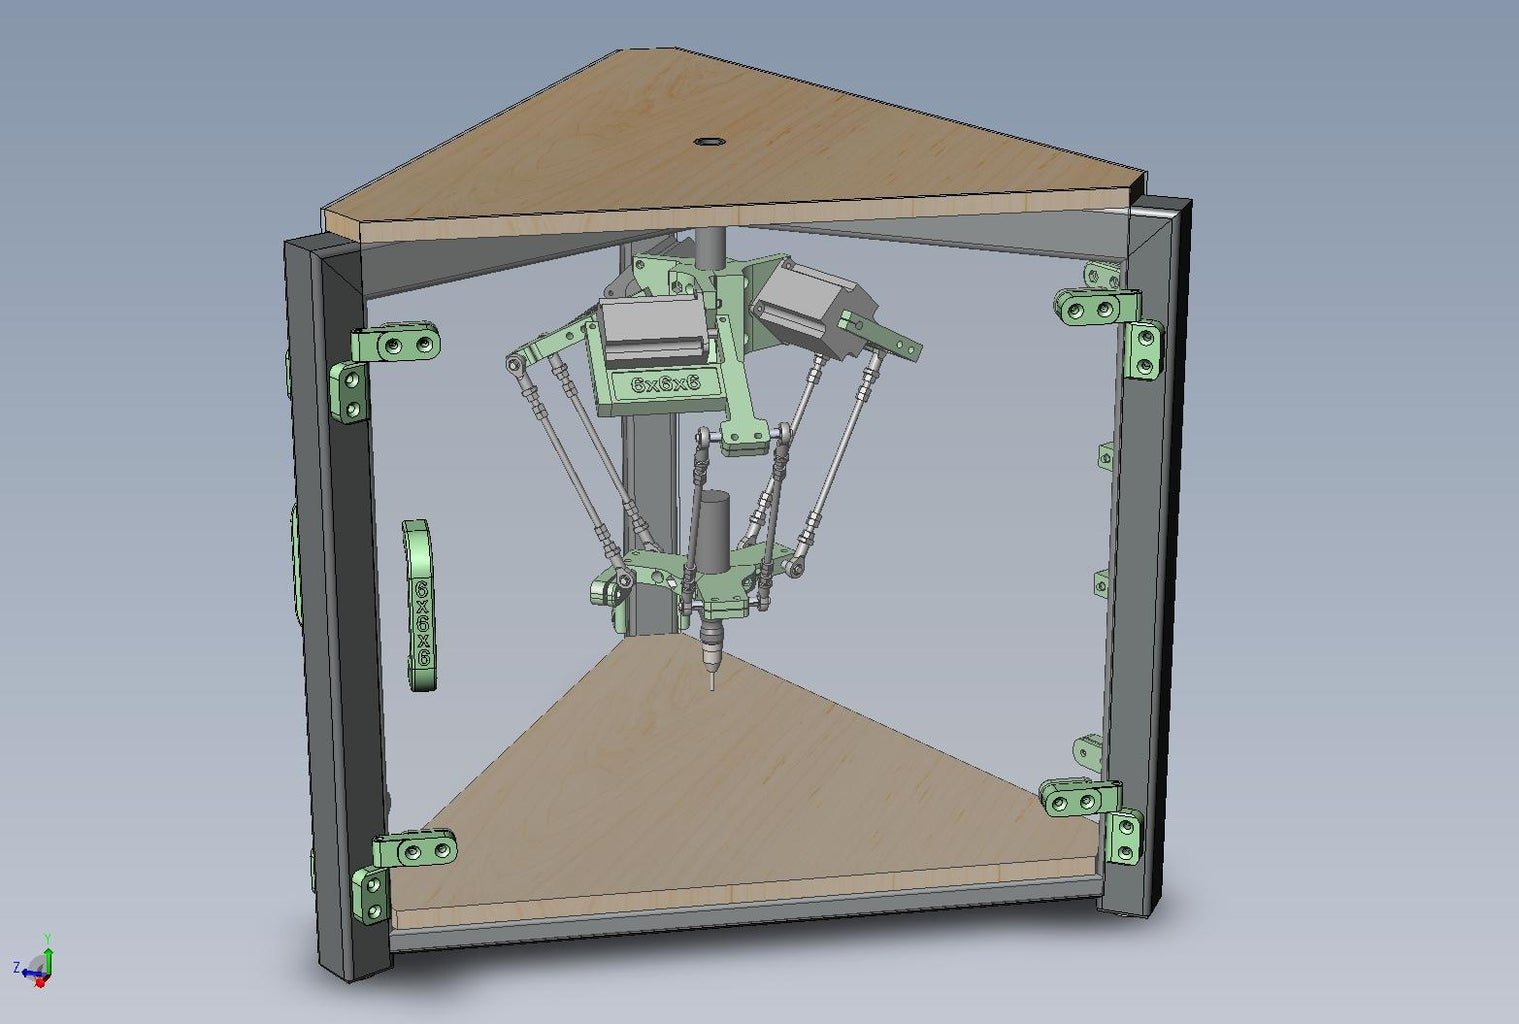 The Build, 6x6x6 Delta CNC in Action